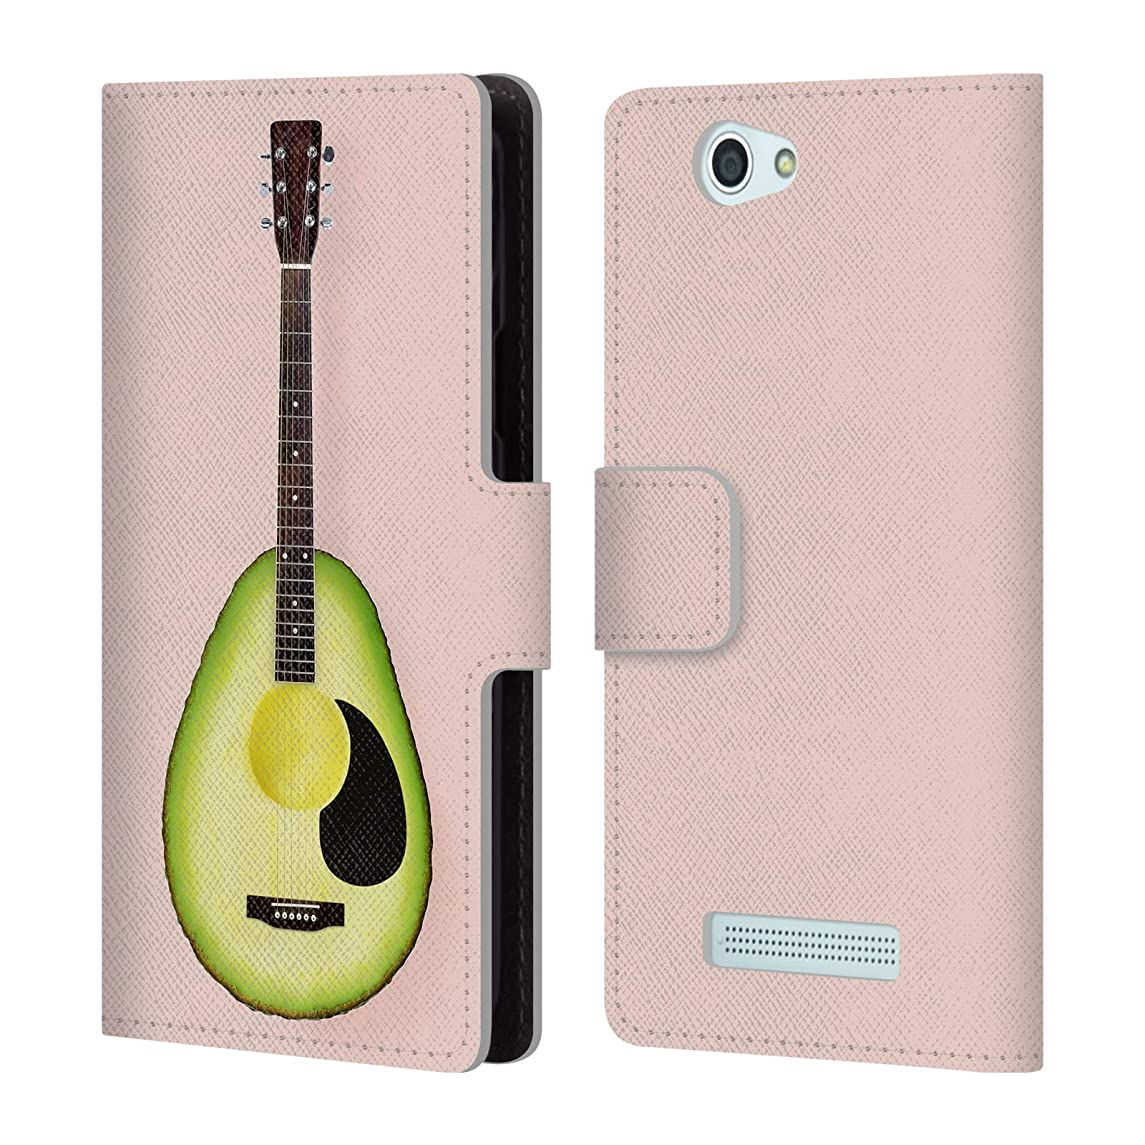 Official Paul Fuentes Avocado Guitar Pastels Leather Book Wallet Case Cover for Wileyfox Spark/Plus